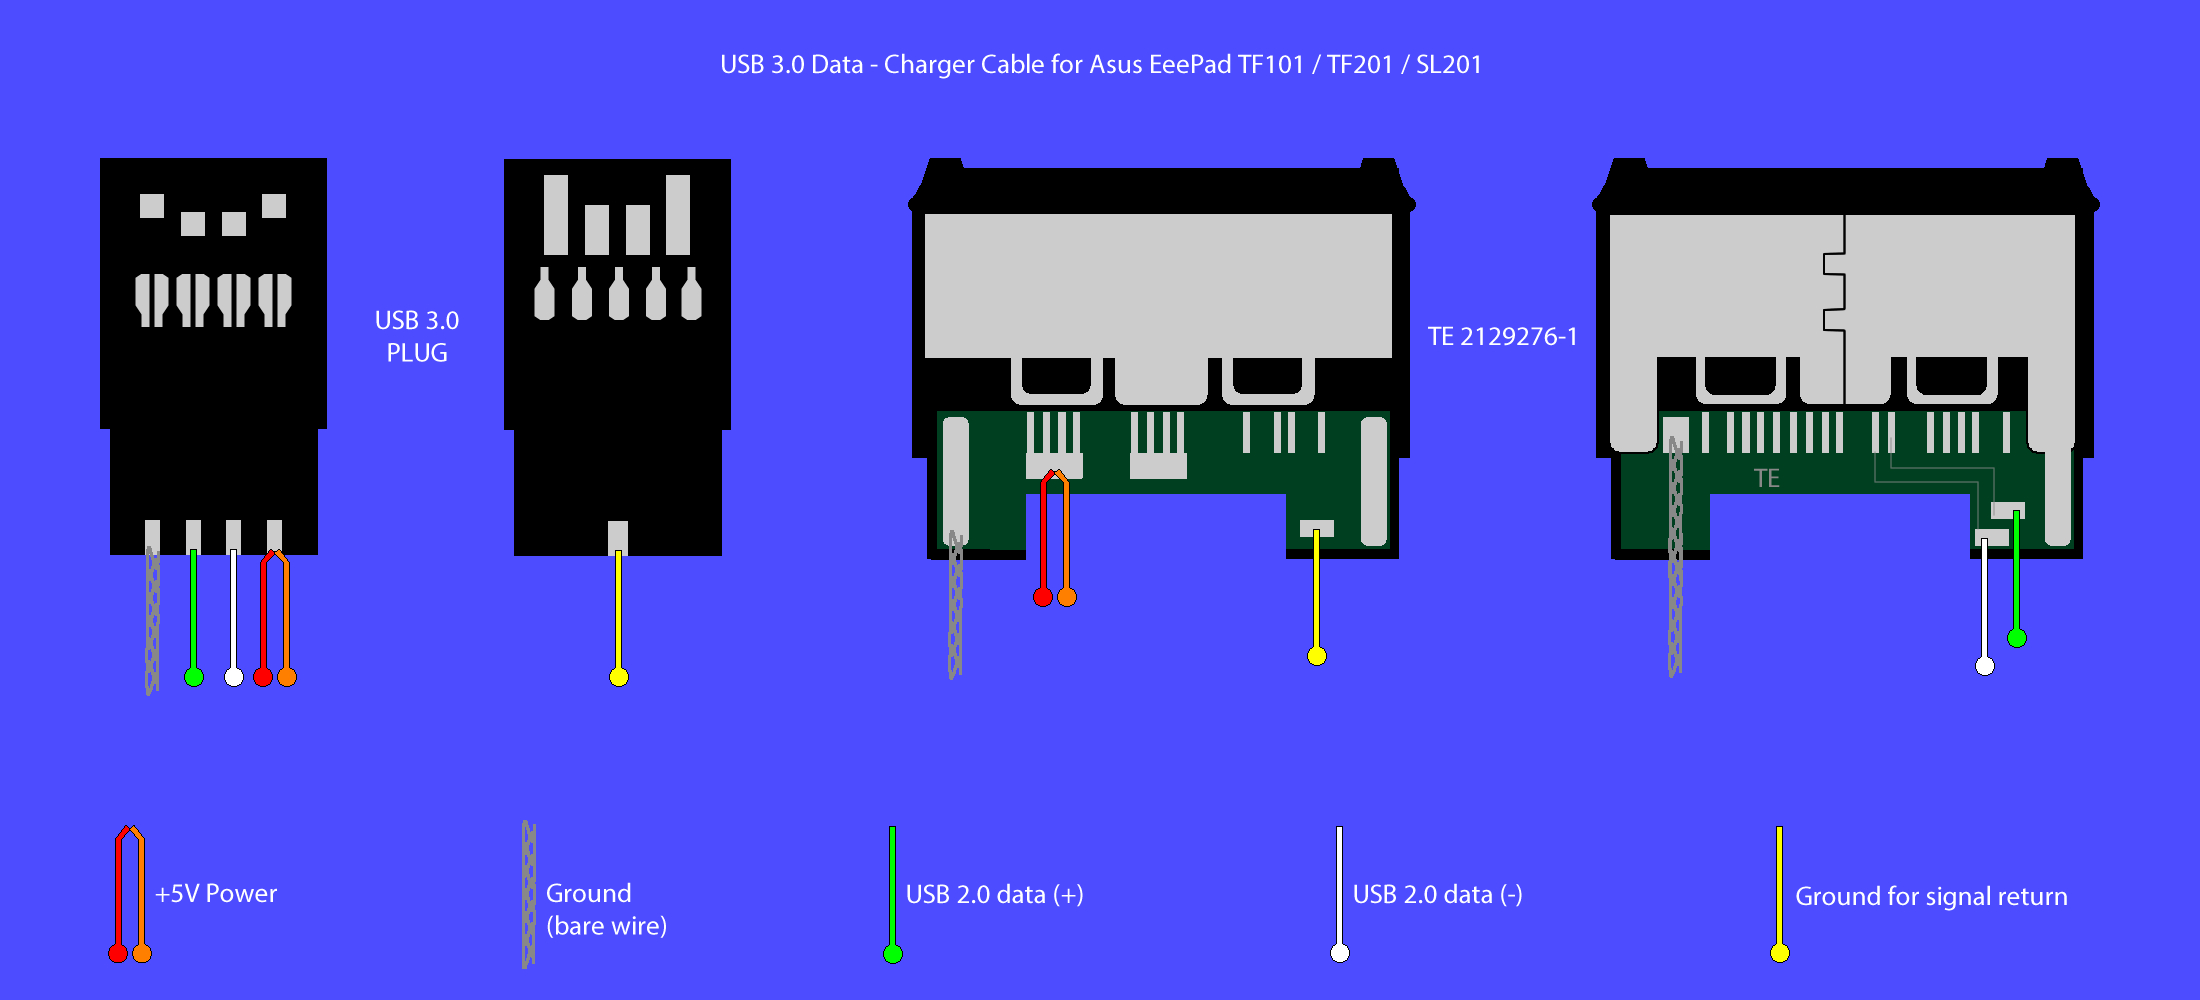 Iphone 5 Usb Charger Wiring Diagram | Wiring Diagram - Ps2 5Wire Keyboard To Usb Wiring Diagram Red Yellow Brown Grey Bare